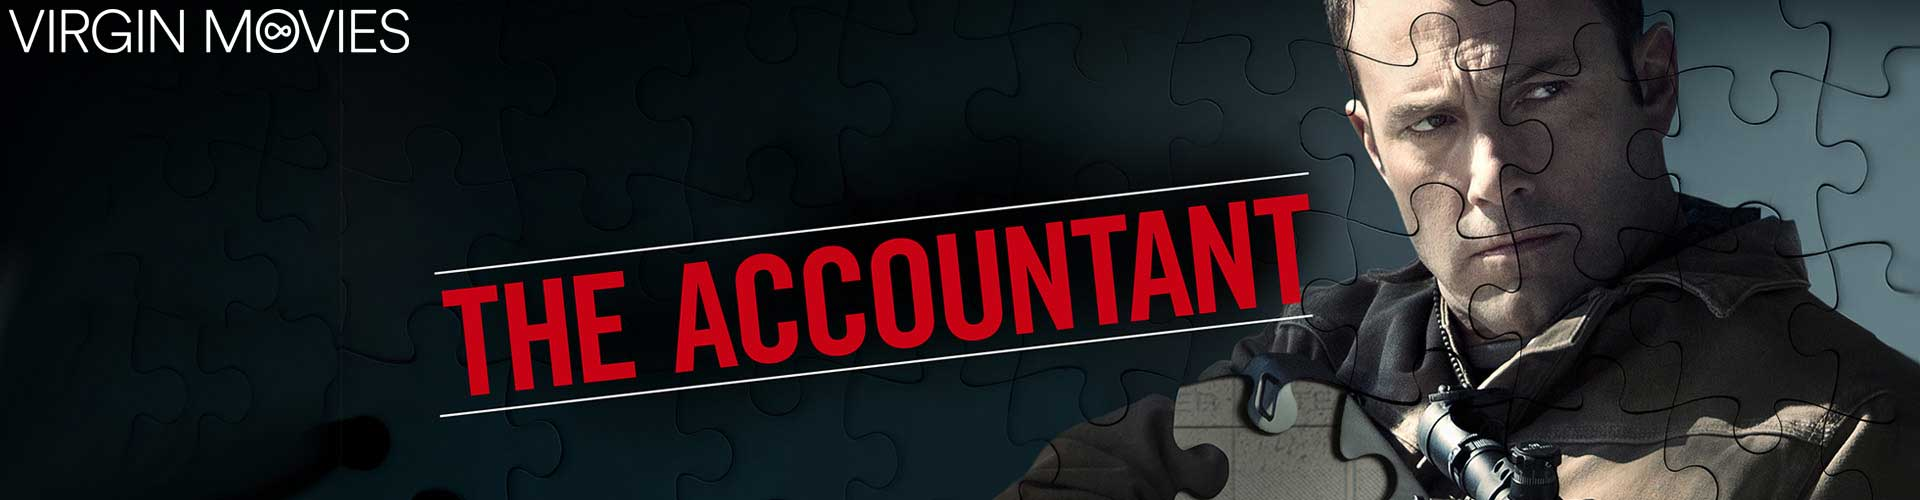 the-accountant-header.jpg